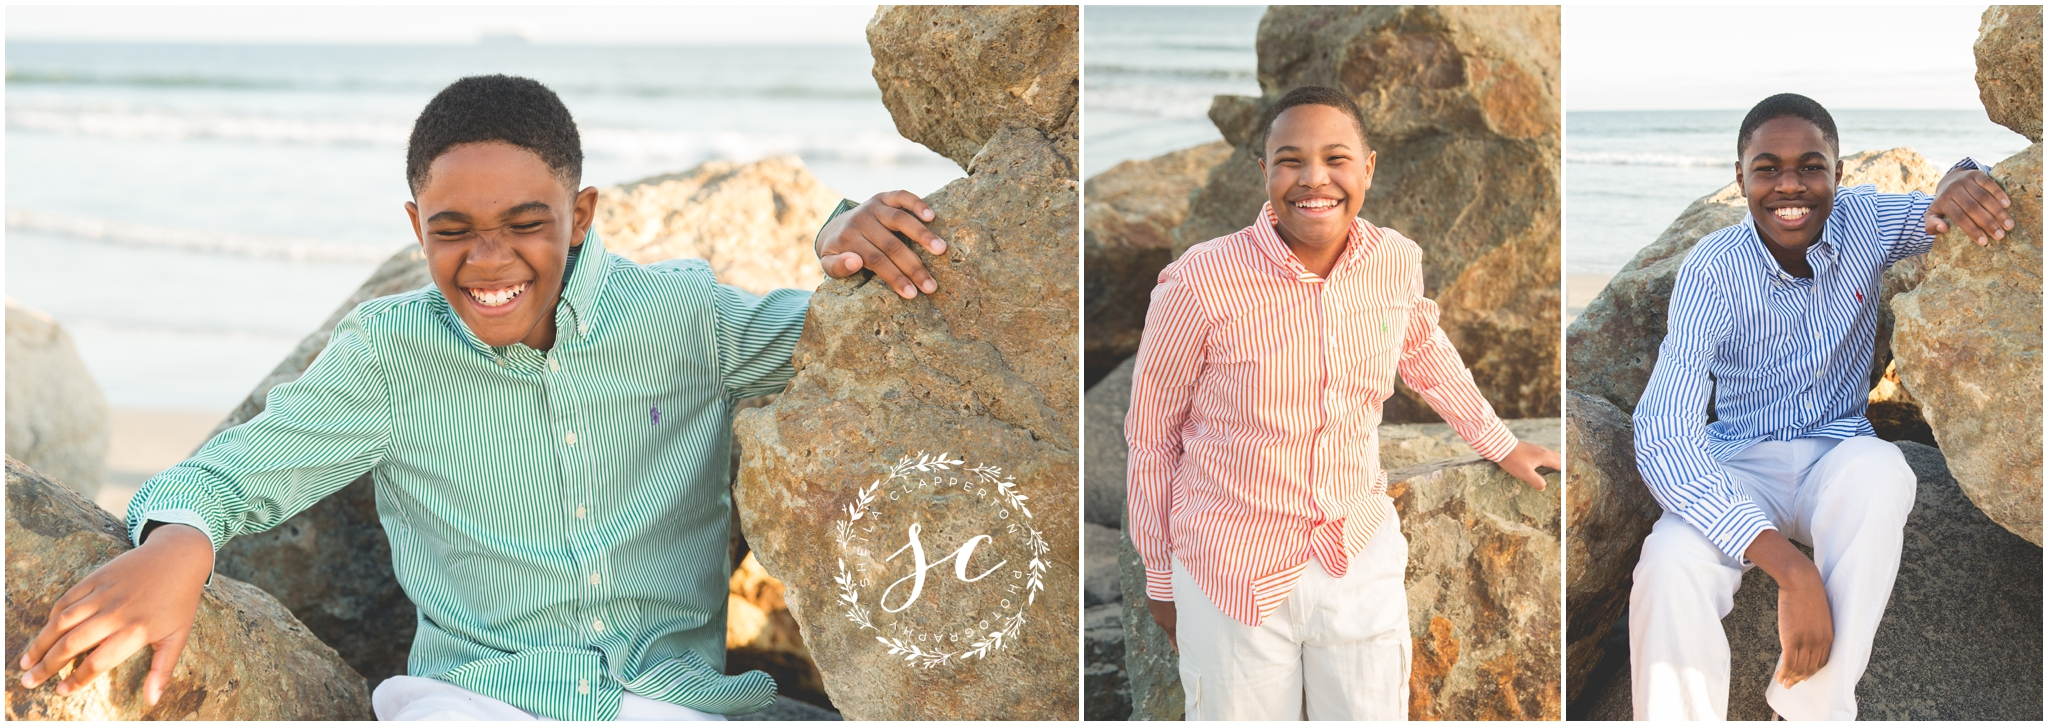 coronado custom portrait photographer